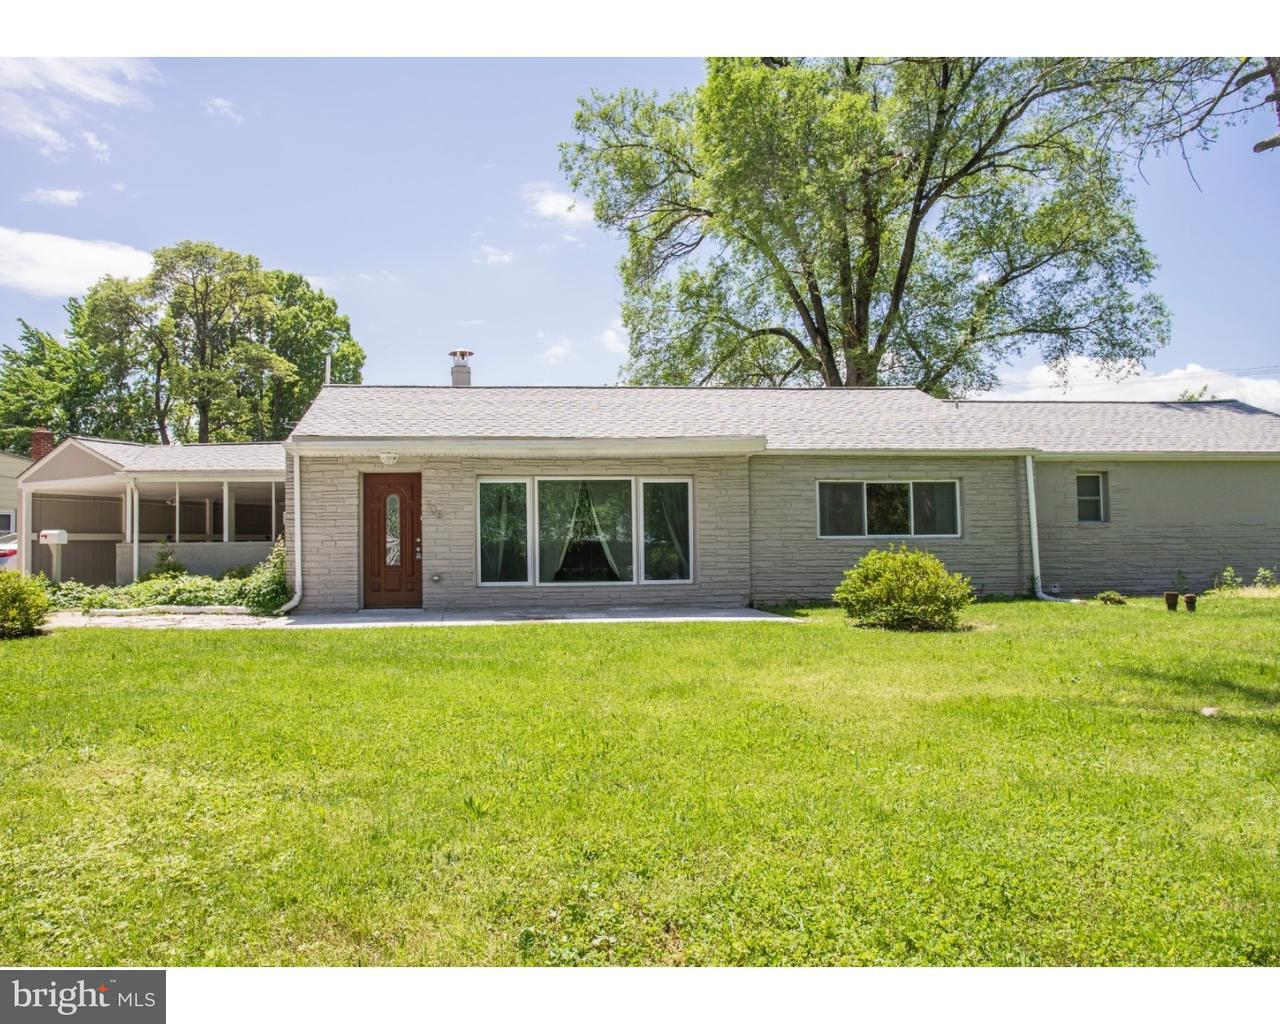 706 WOODBROOK LN, PLYMOUTH MEETING - Listed at $2,400, PLYMOUTH MEETING